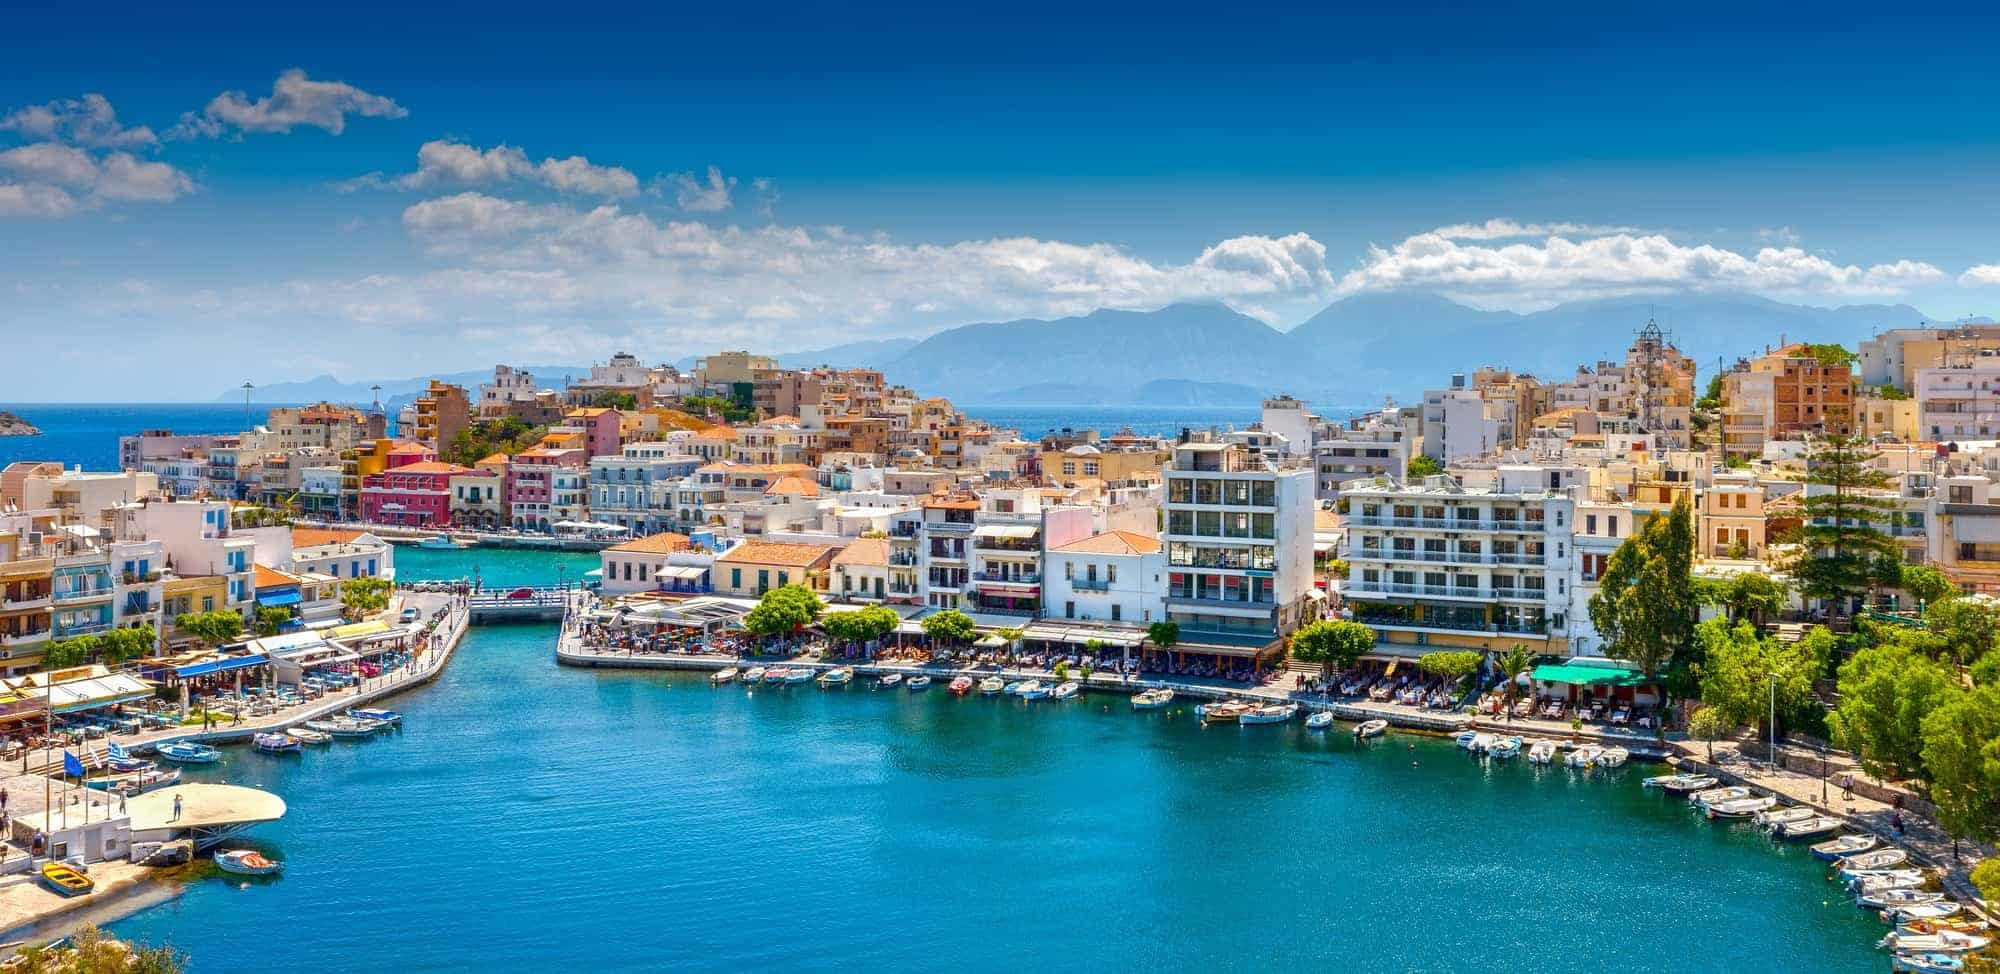 Agios Nikolaos. Agios Nikolaos is a picturesque town in the eastern part of the island Crete built on the northwest side of the peaceful bay of Mirabello